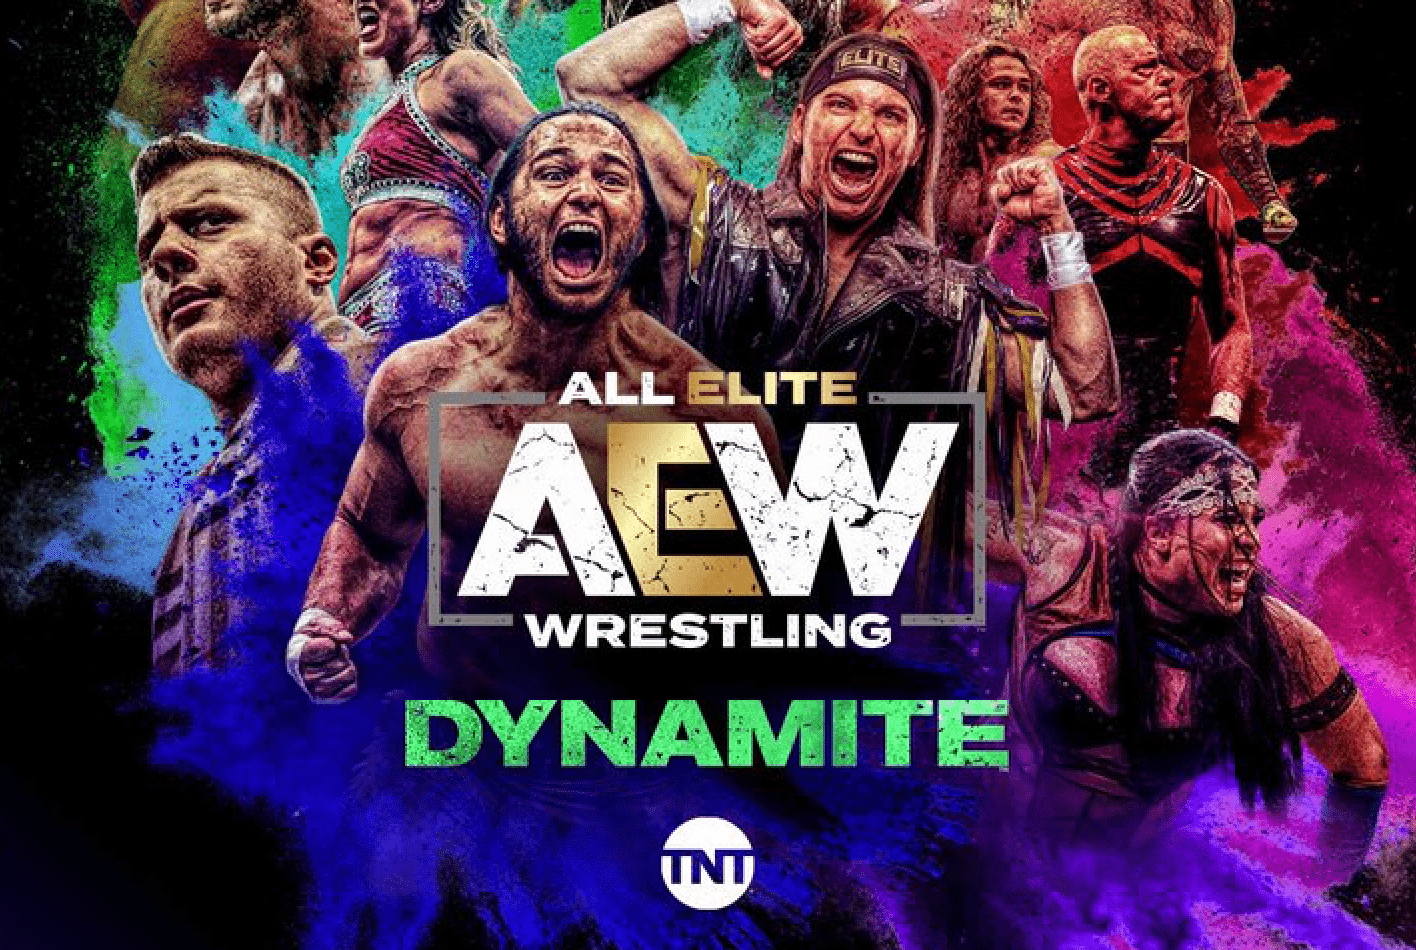 AEW confirms Wednesday TNT show name is DYNAMITE